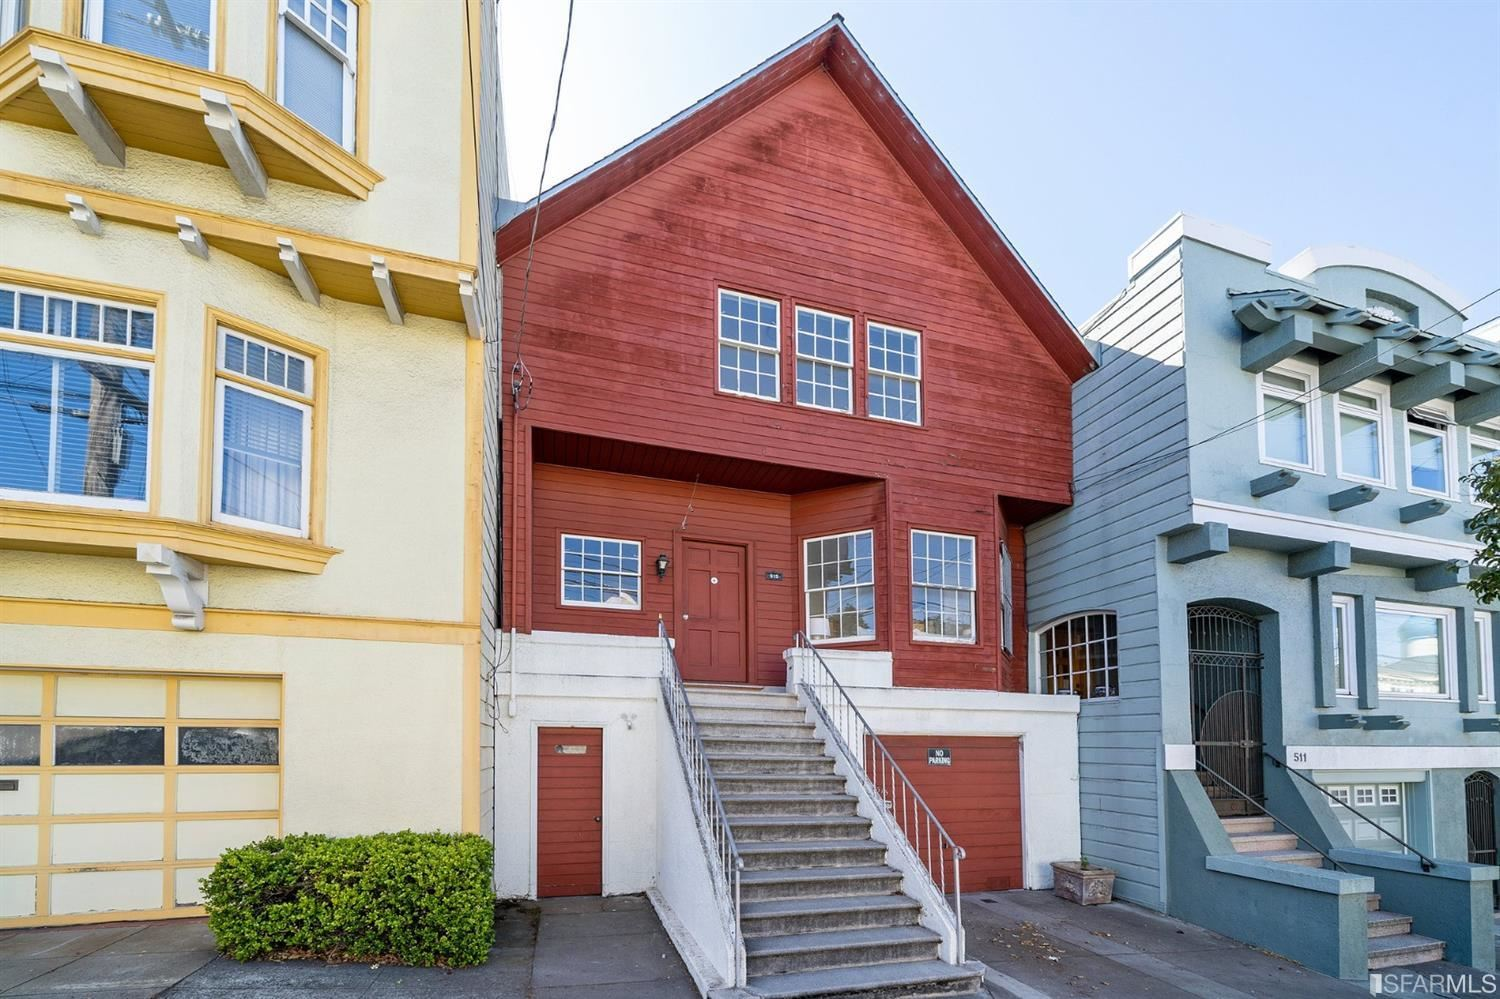 515 12th Avenue, San Francisco, CA 94118 - #: 421542452